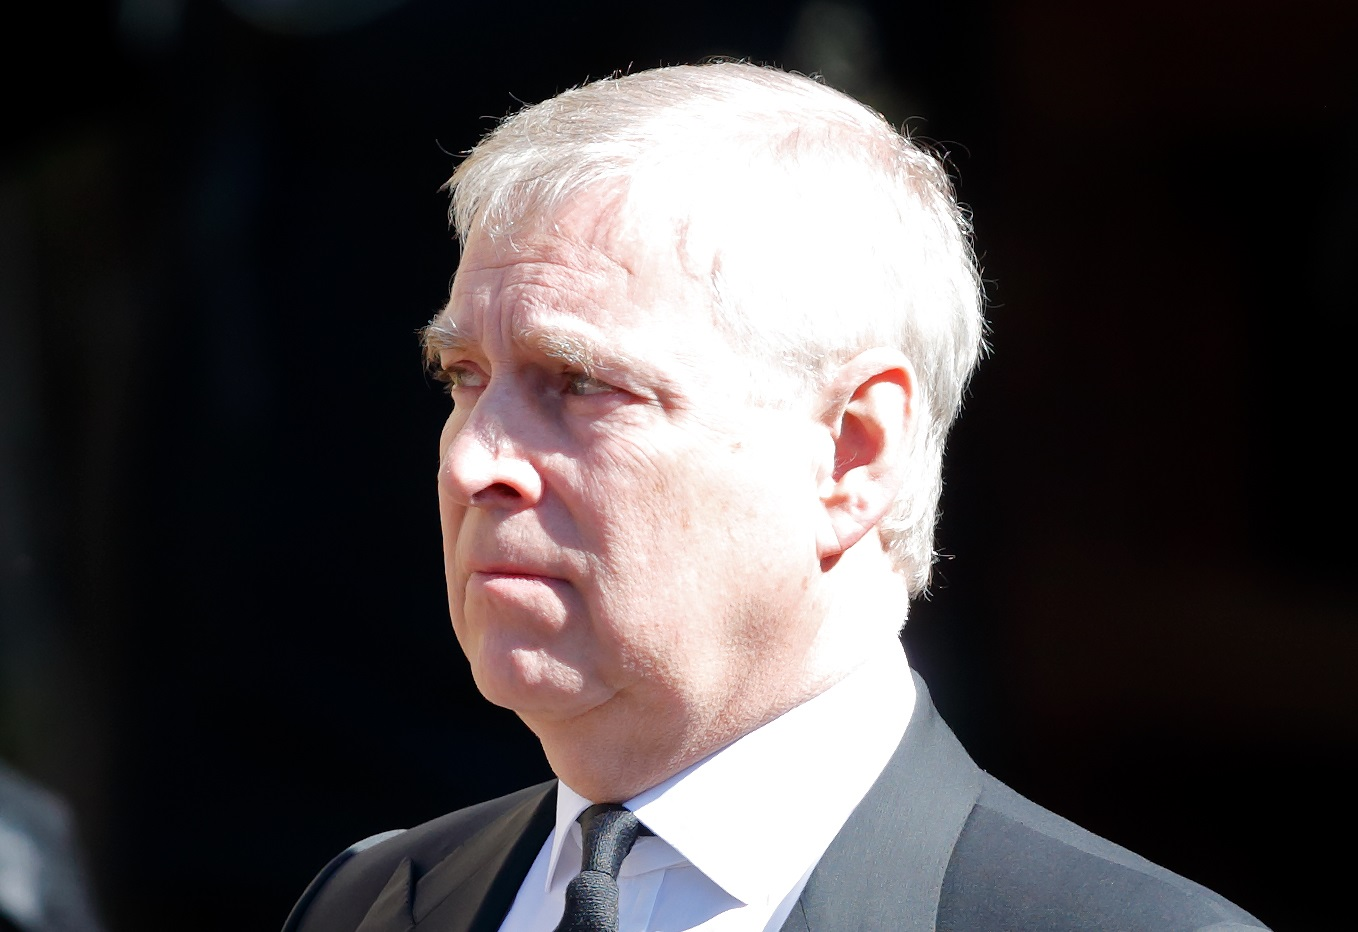 Prince Andrew Security Scare as Trespasser Detained Under Mental Health Act